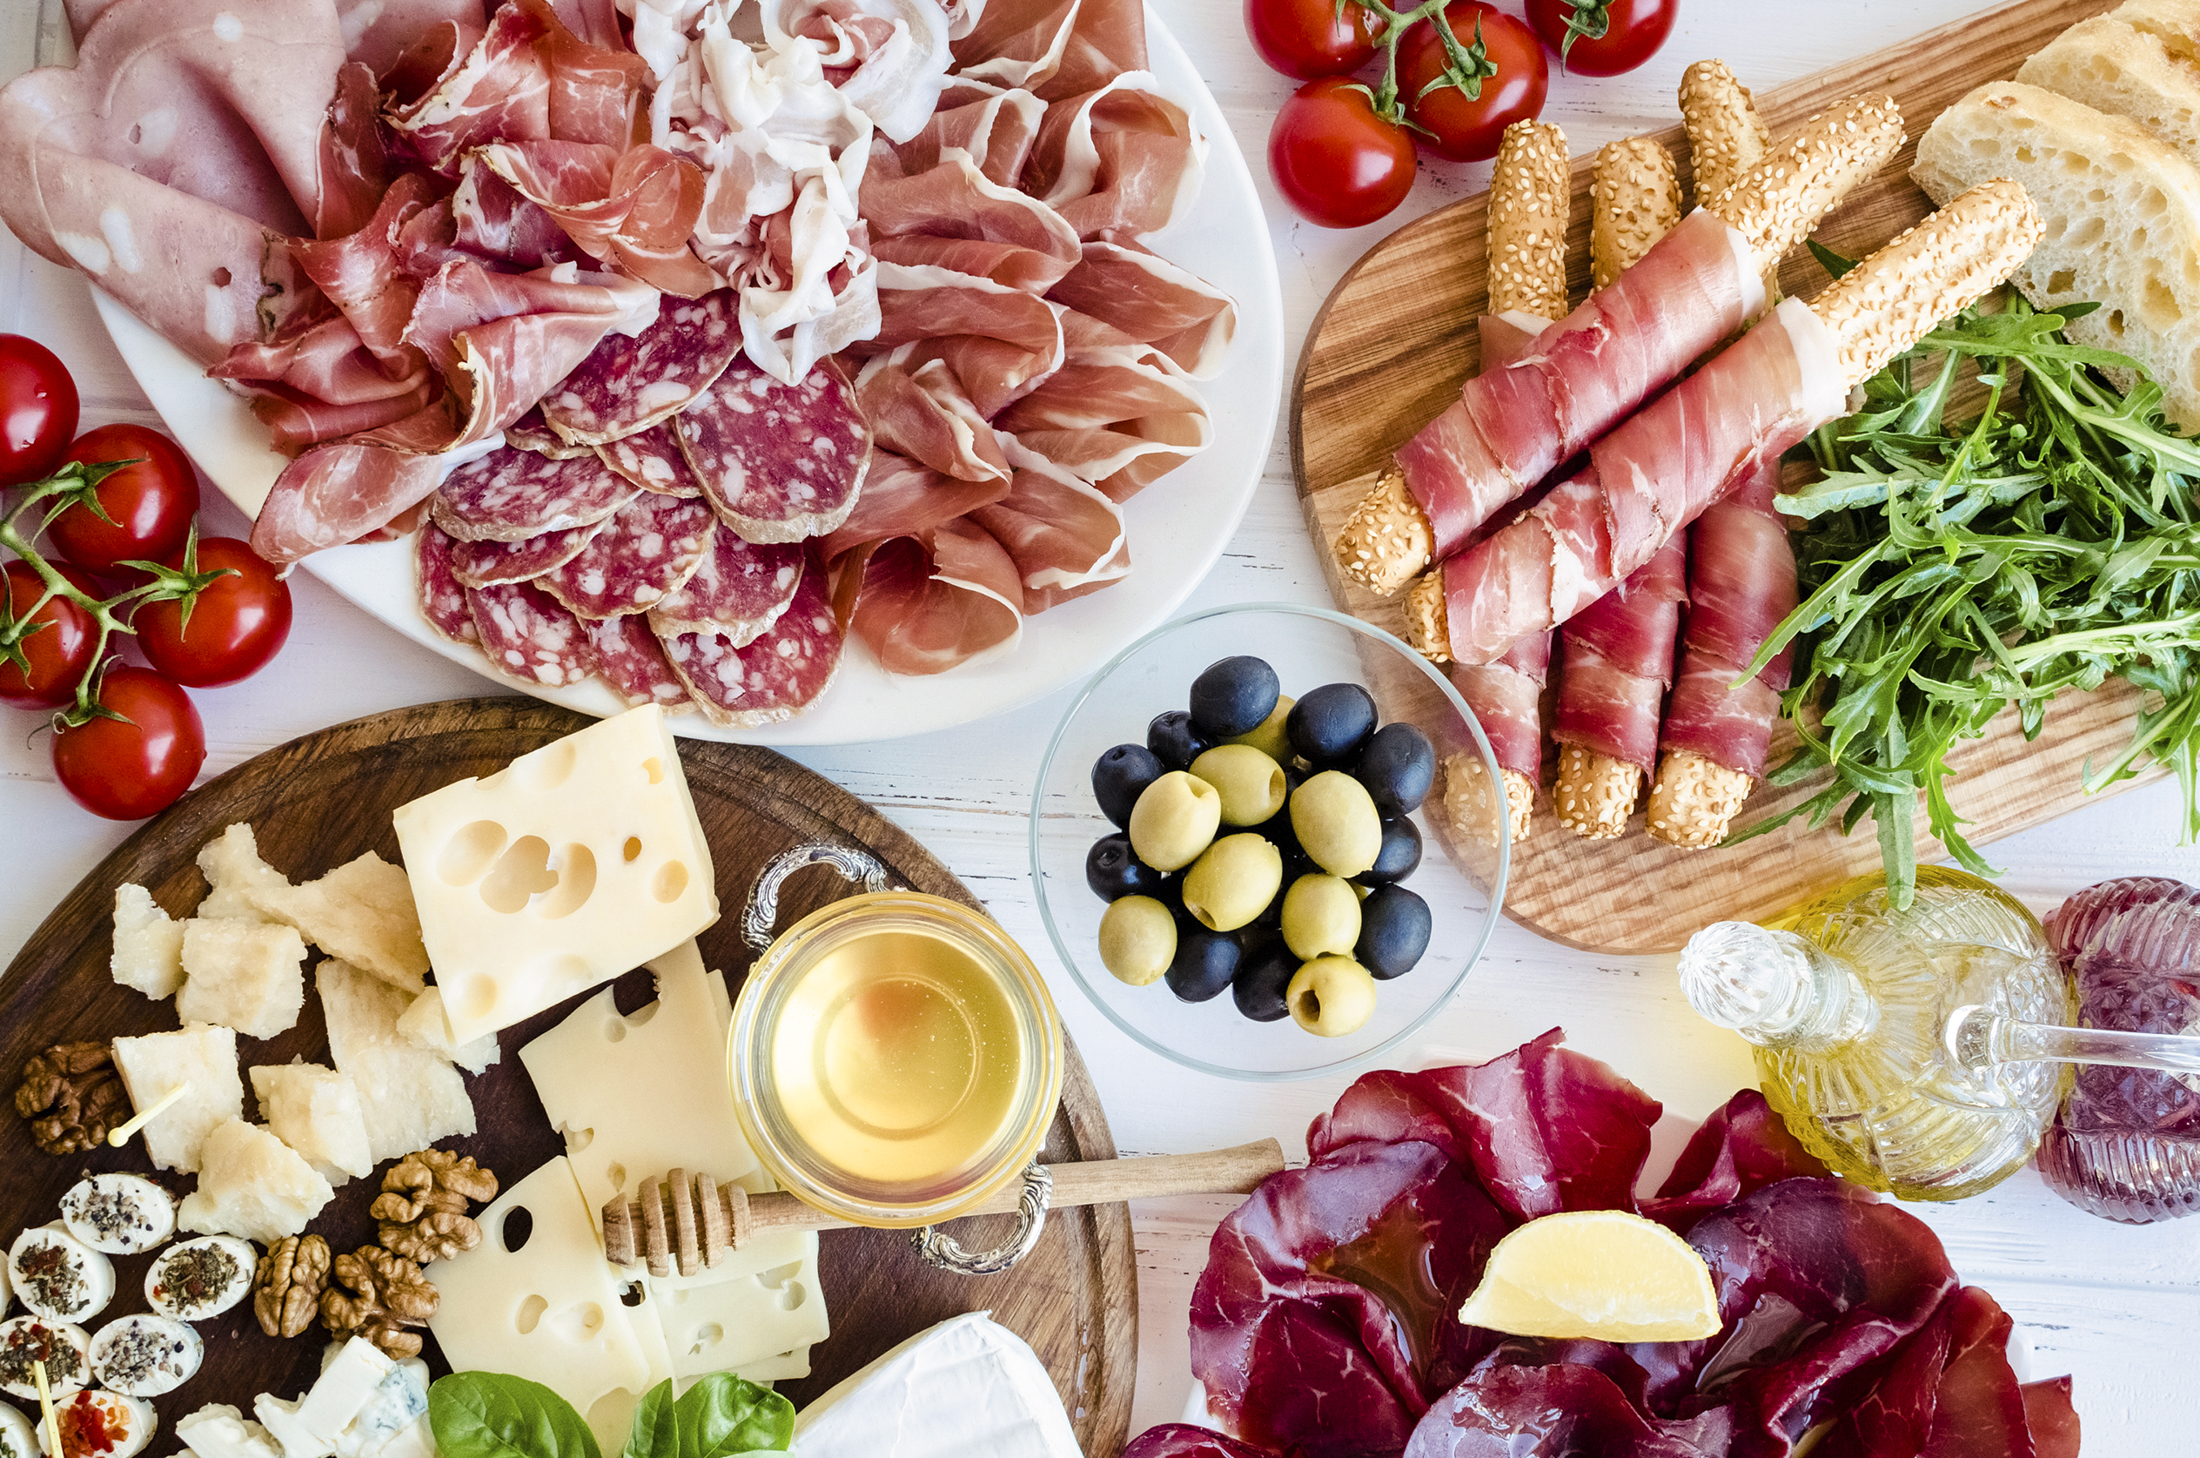 An antipasto comprised of assorted meats and cheeses.